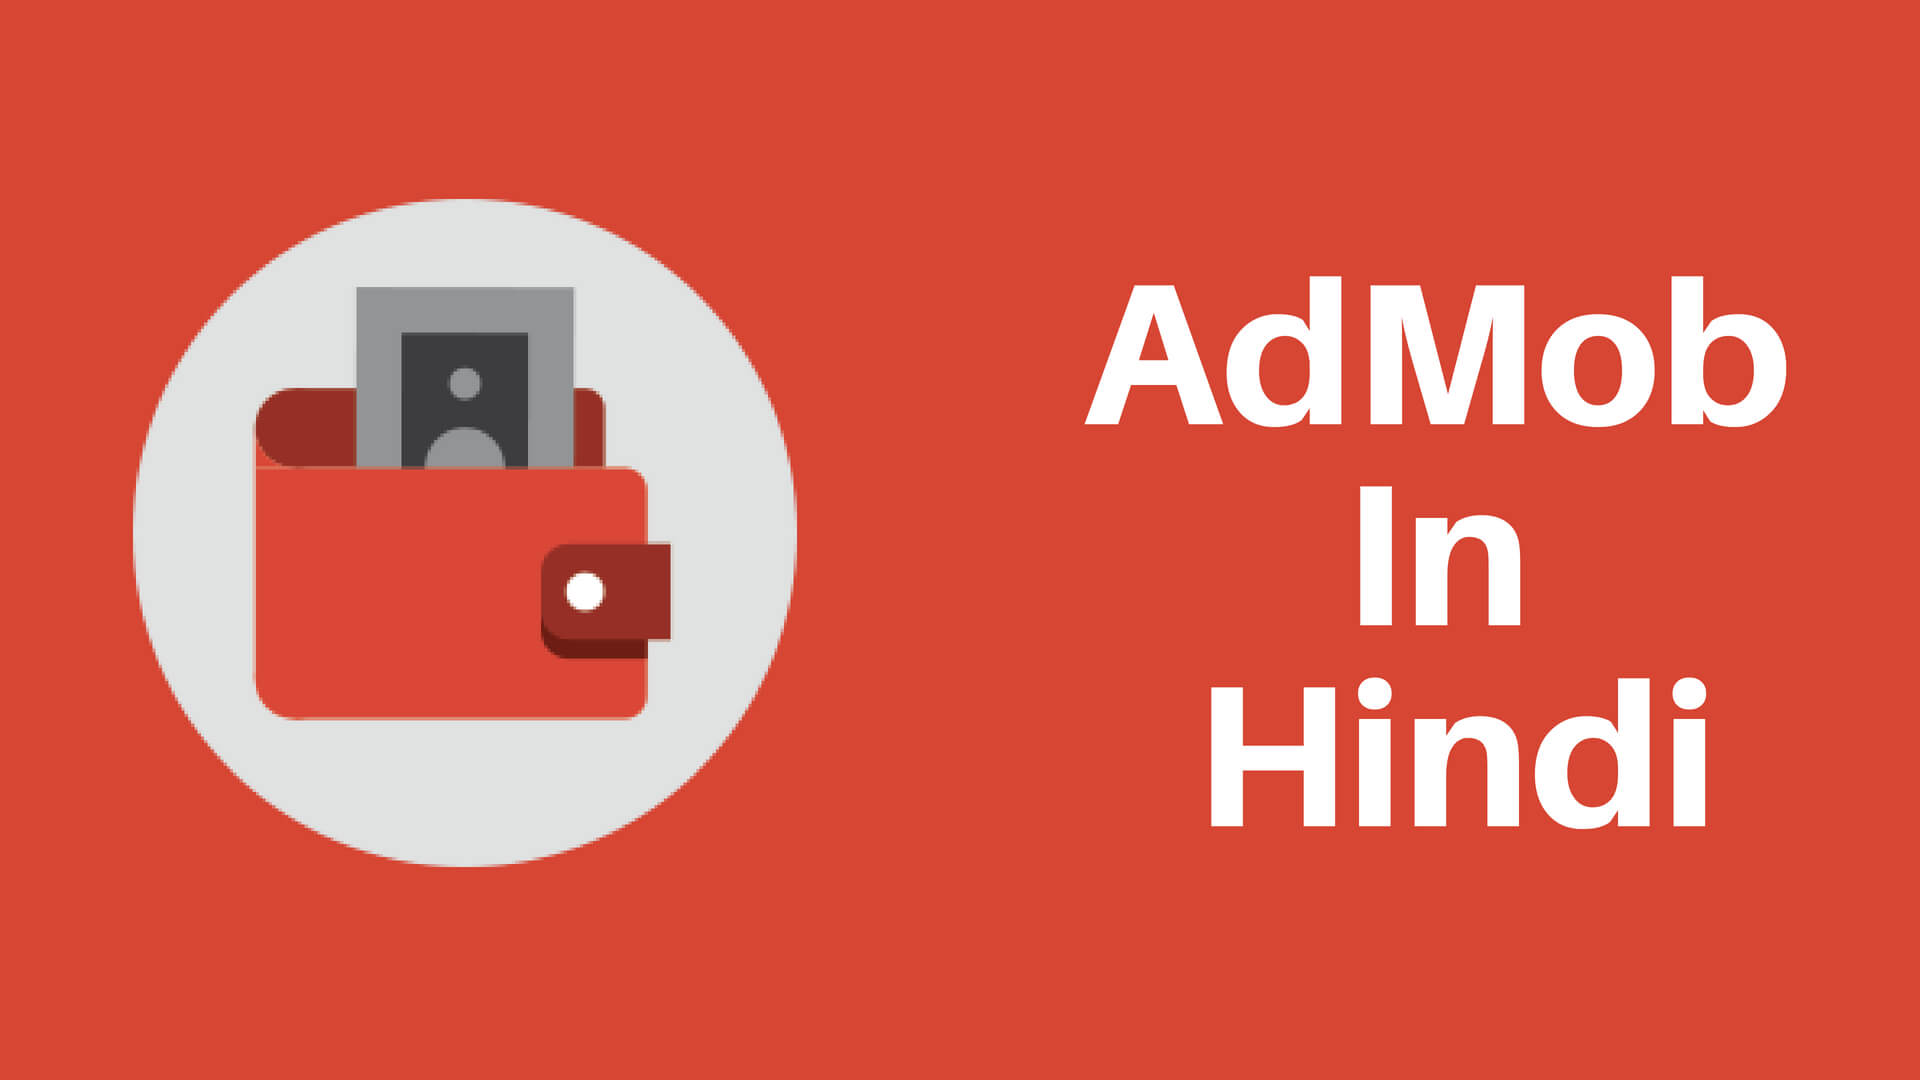 AdMob In Hindi